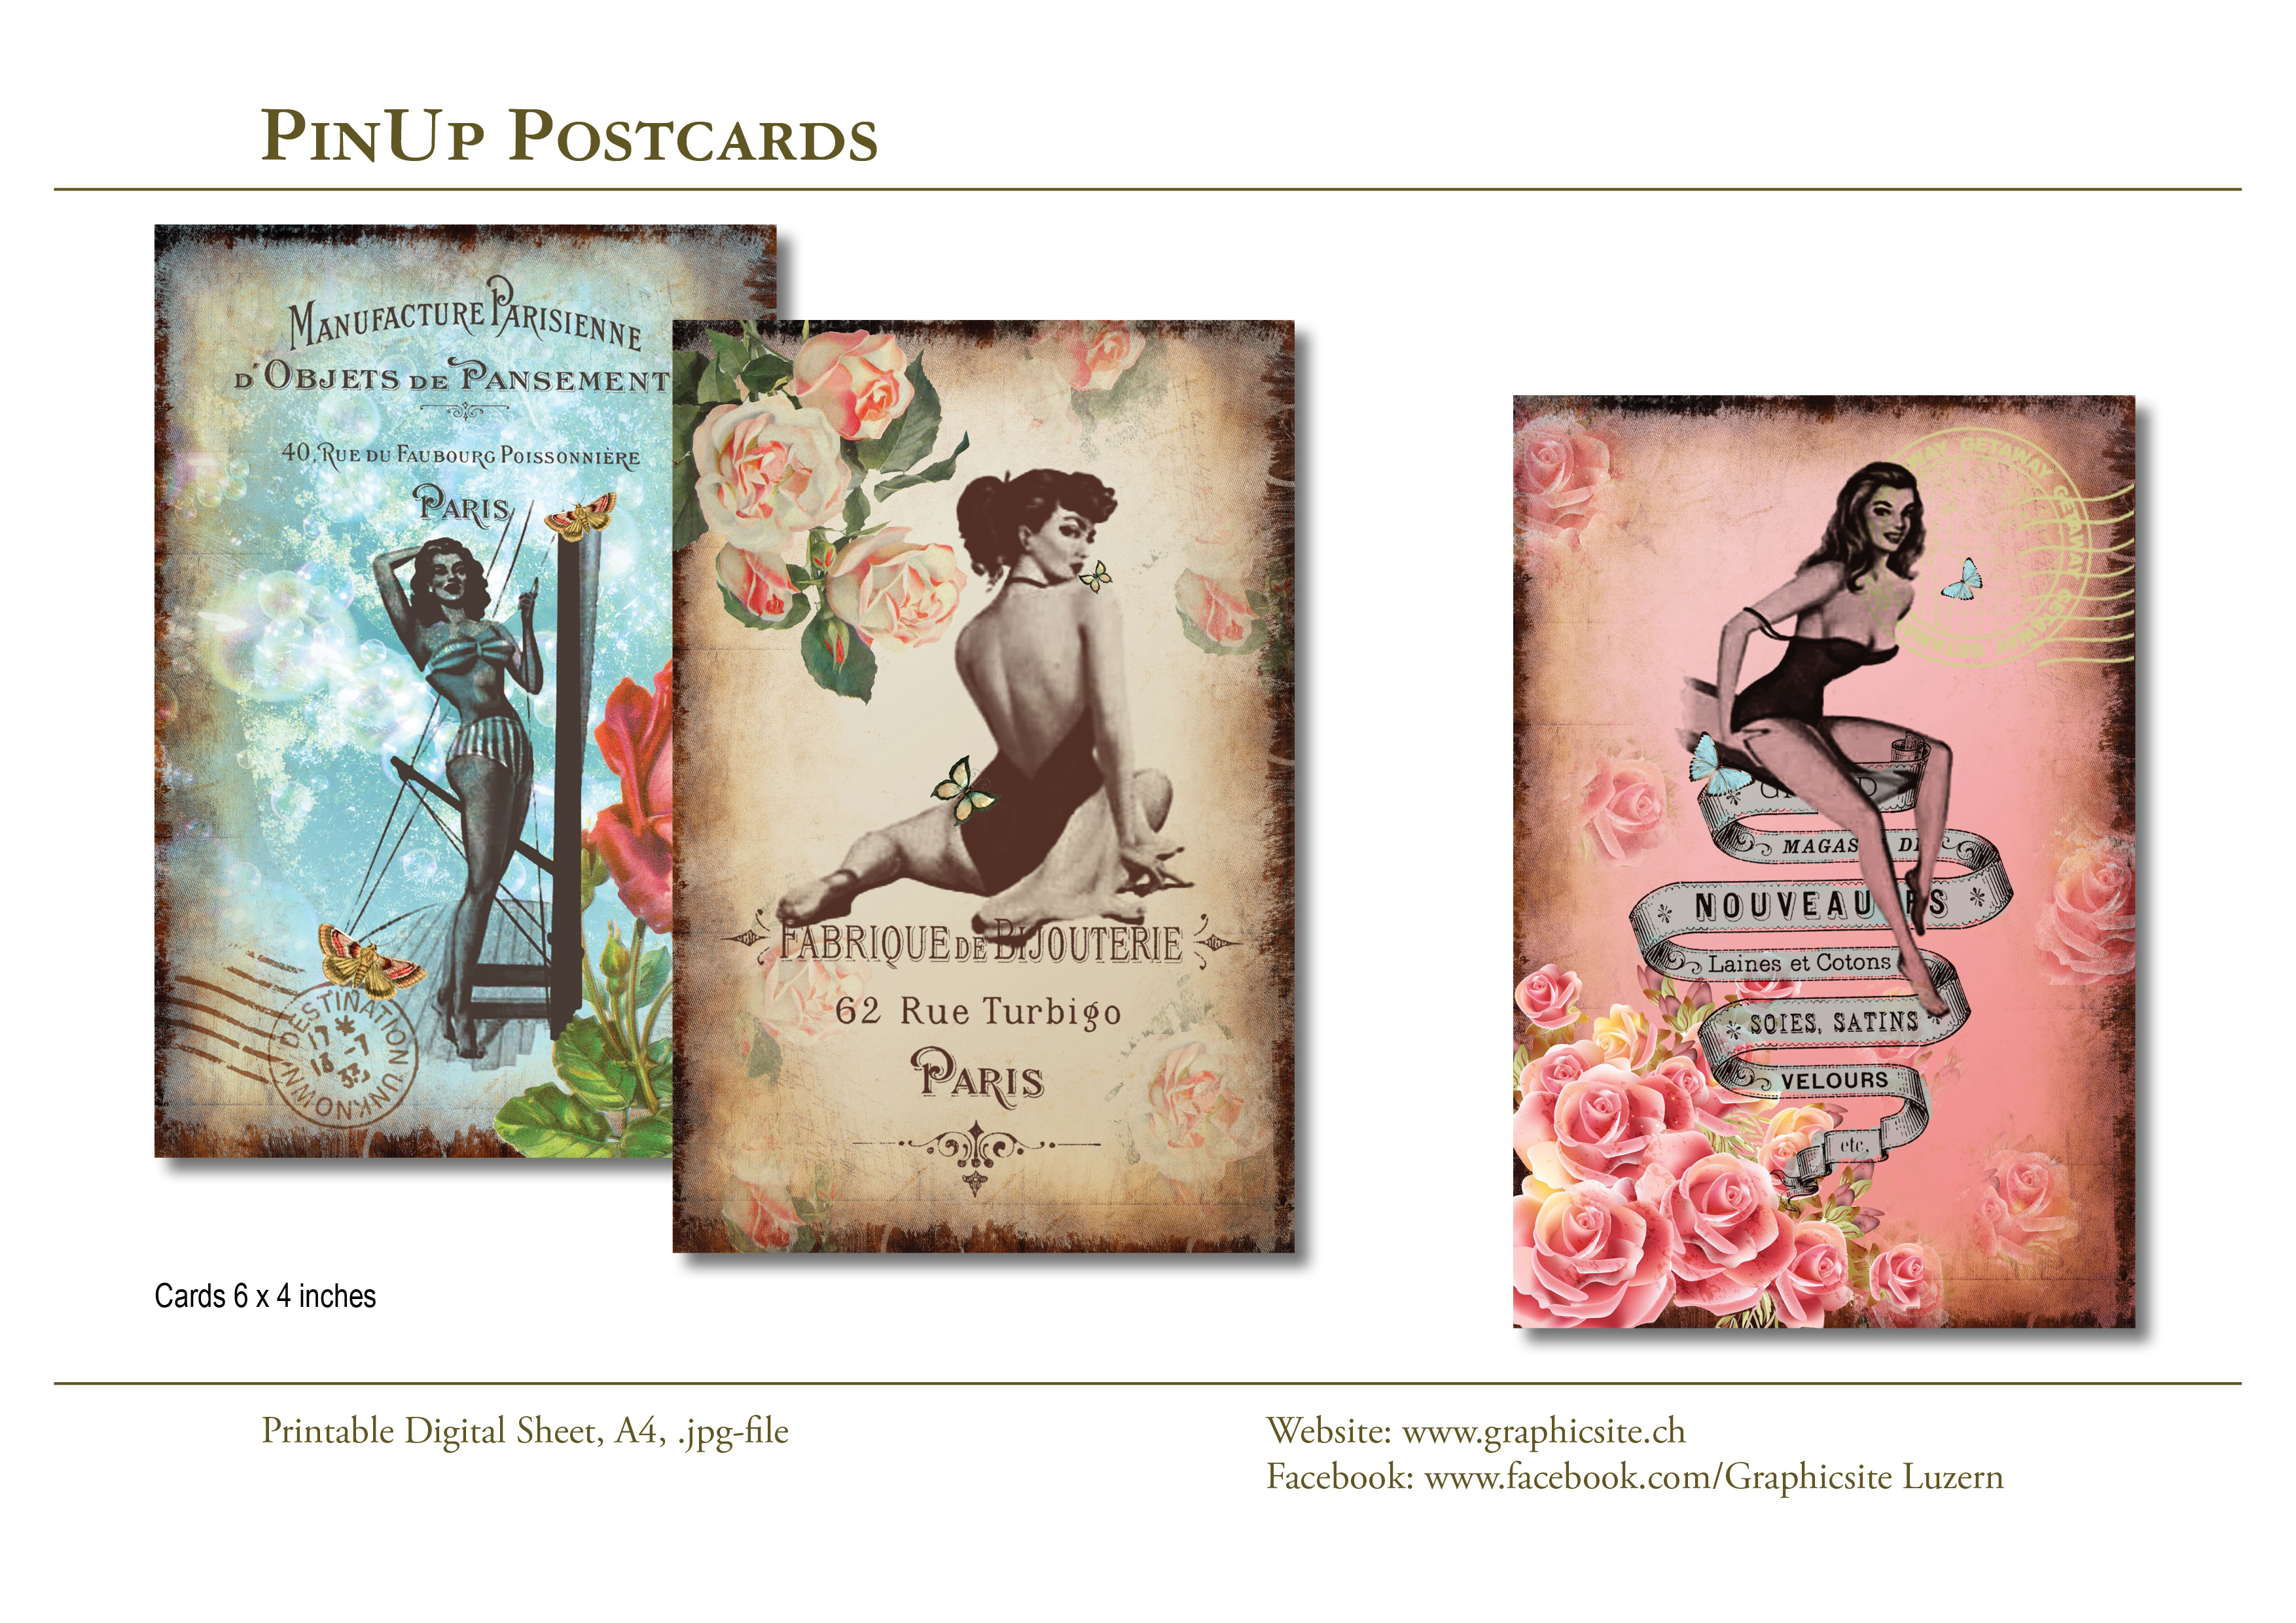 Printable Digital Sheets - 6x4 images - PinUp Postcards #postcards, #greetingcards, #tags